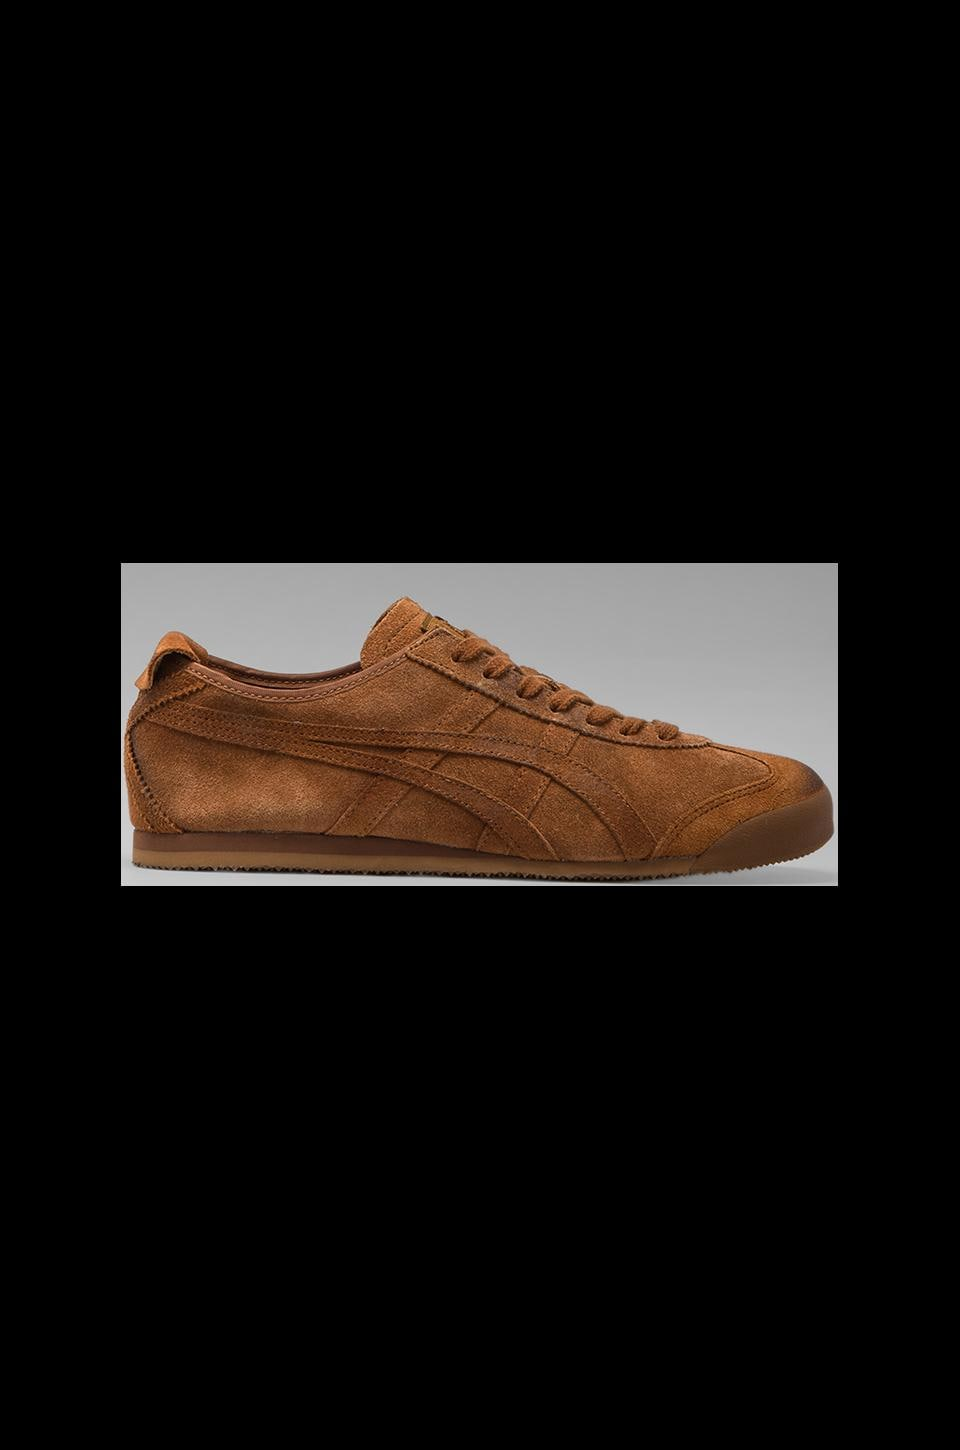 Onitsuka Tiger Mexico 66 in Camel/Camel